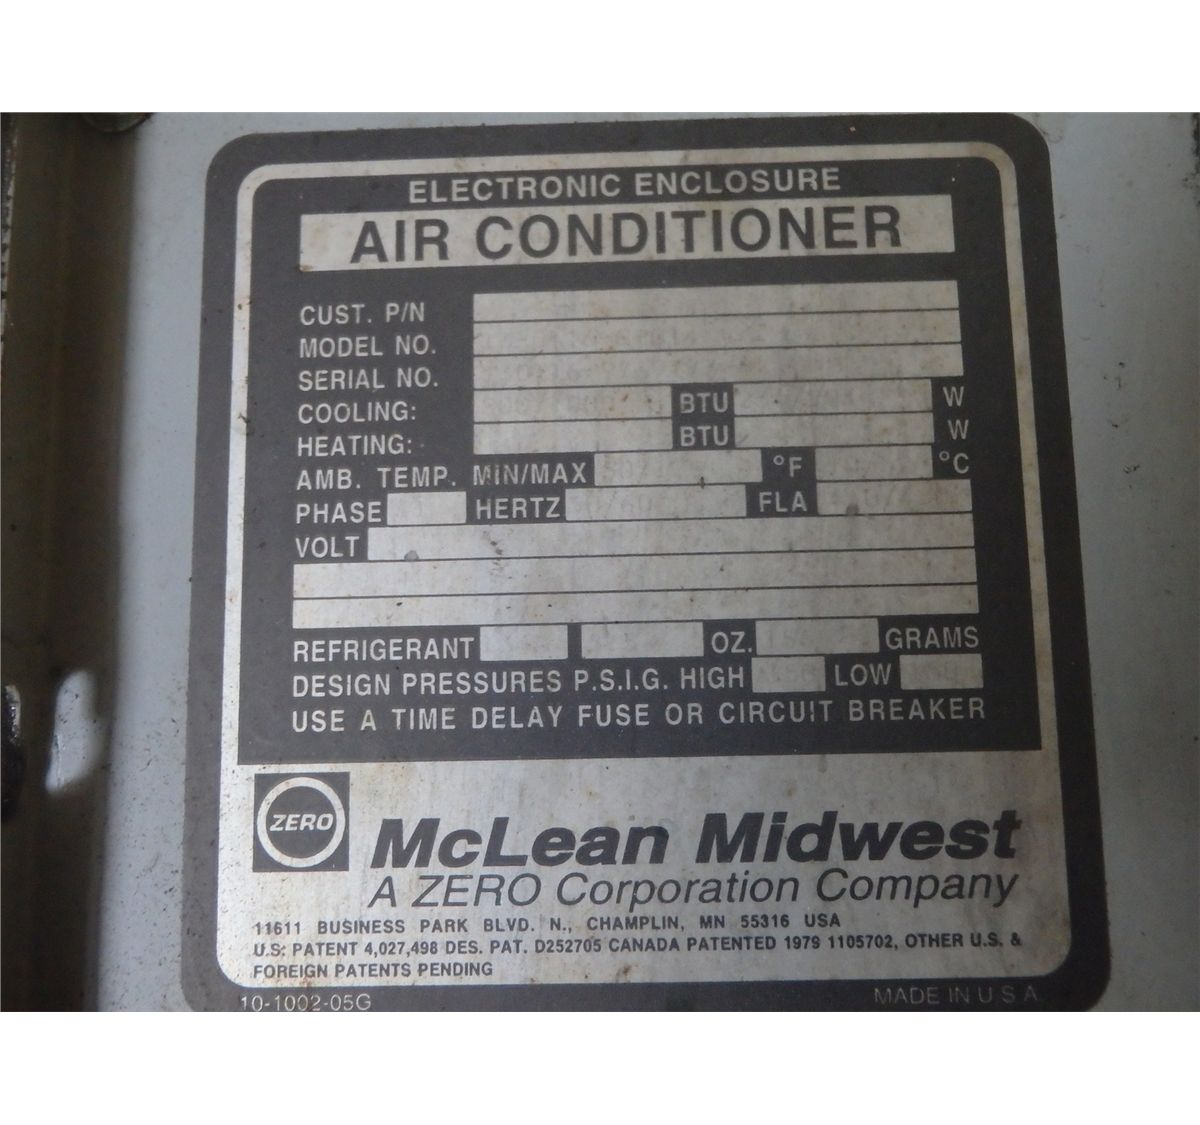 small resolution of  image 5 mclean midwest electrical box chiller air conditioner tag not legible